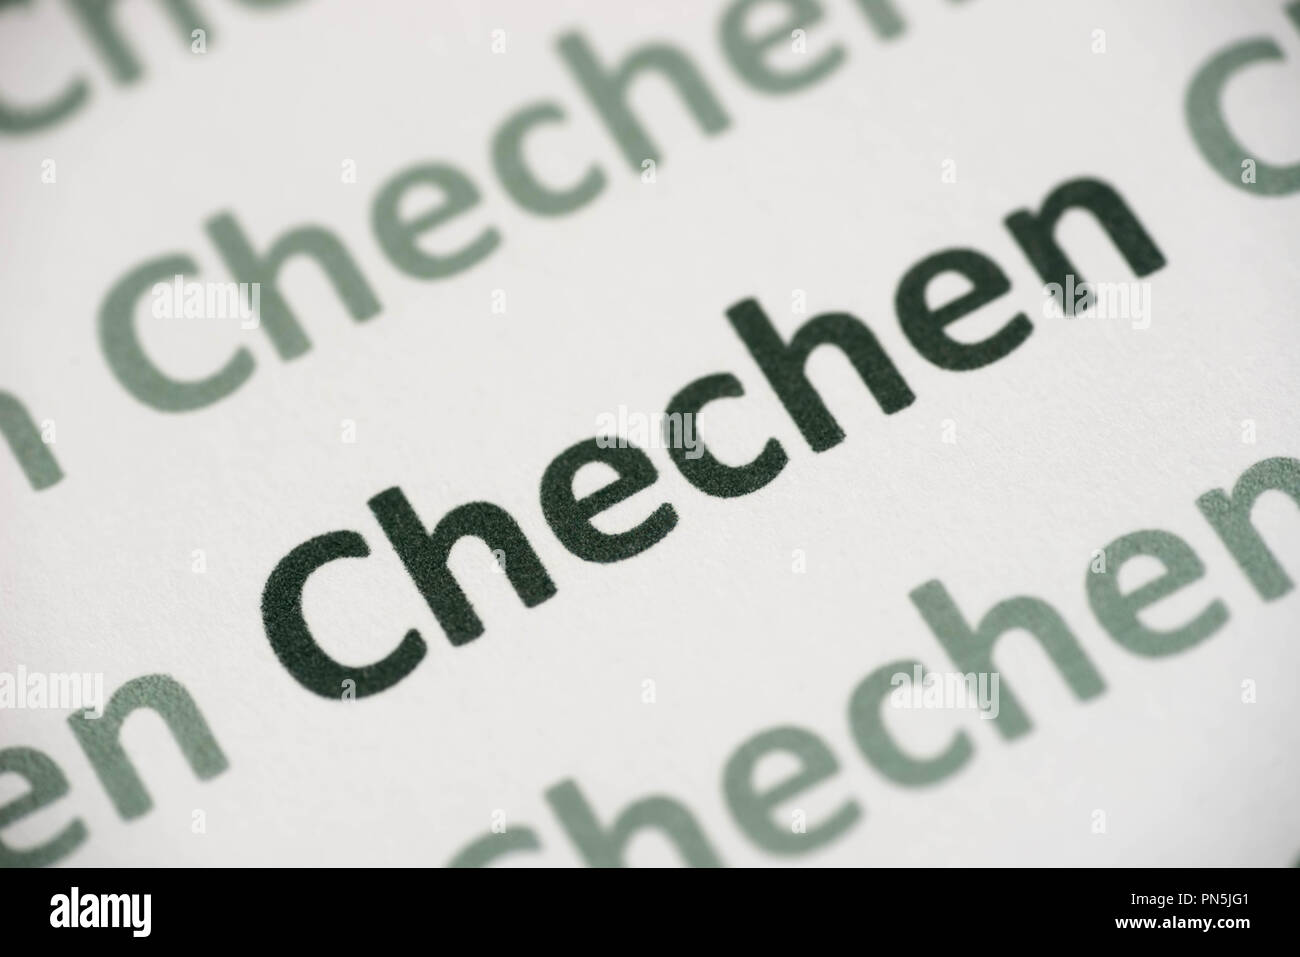 word Chechen language printed on white paper macro - Stock Image